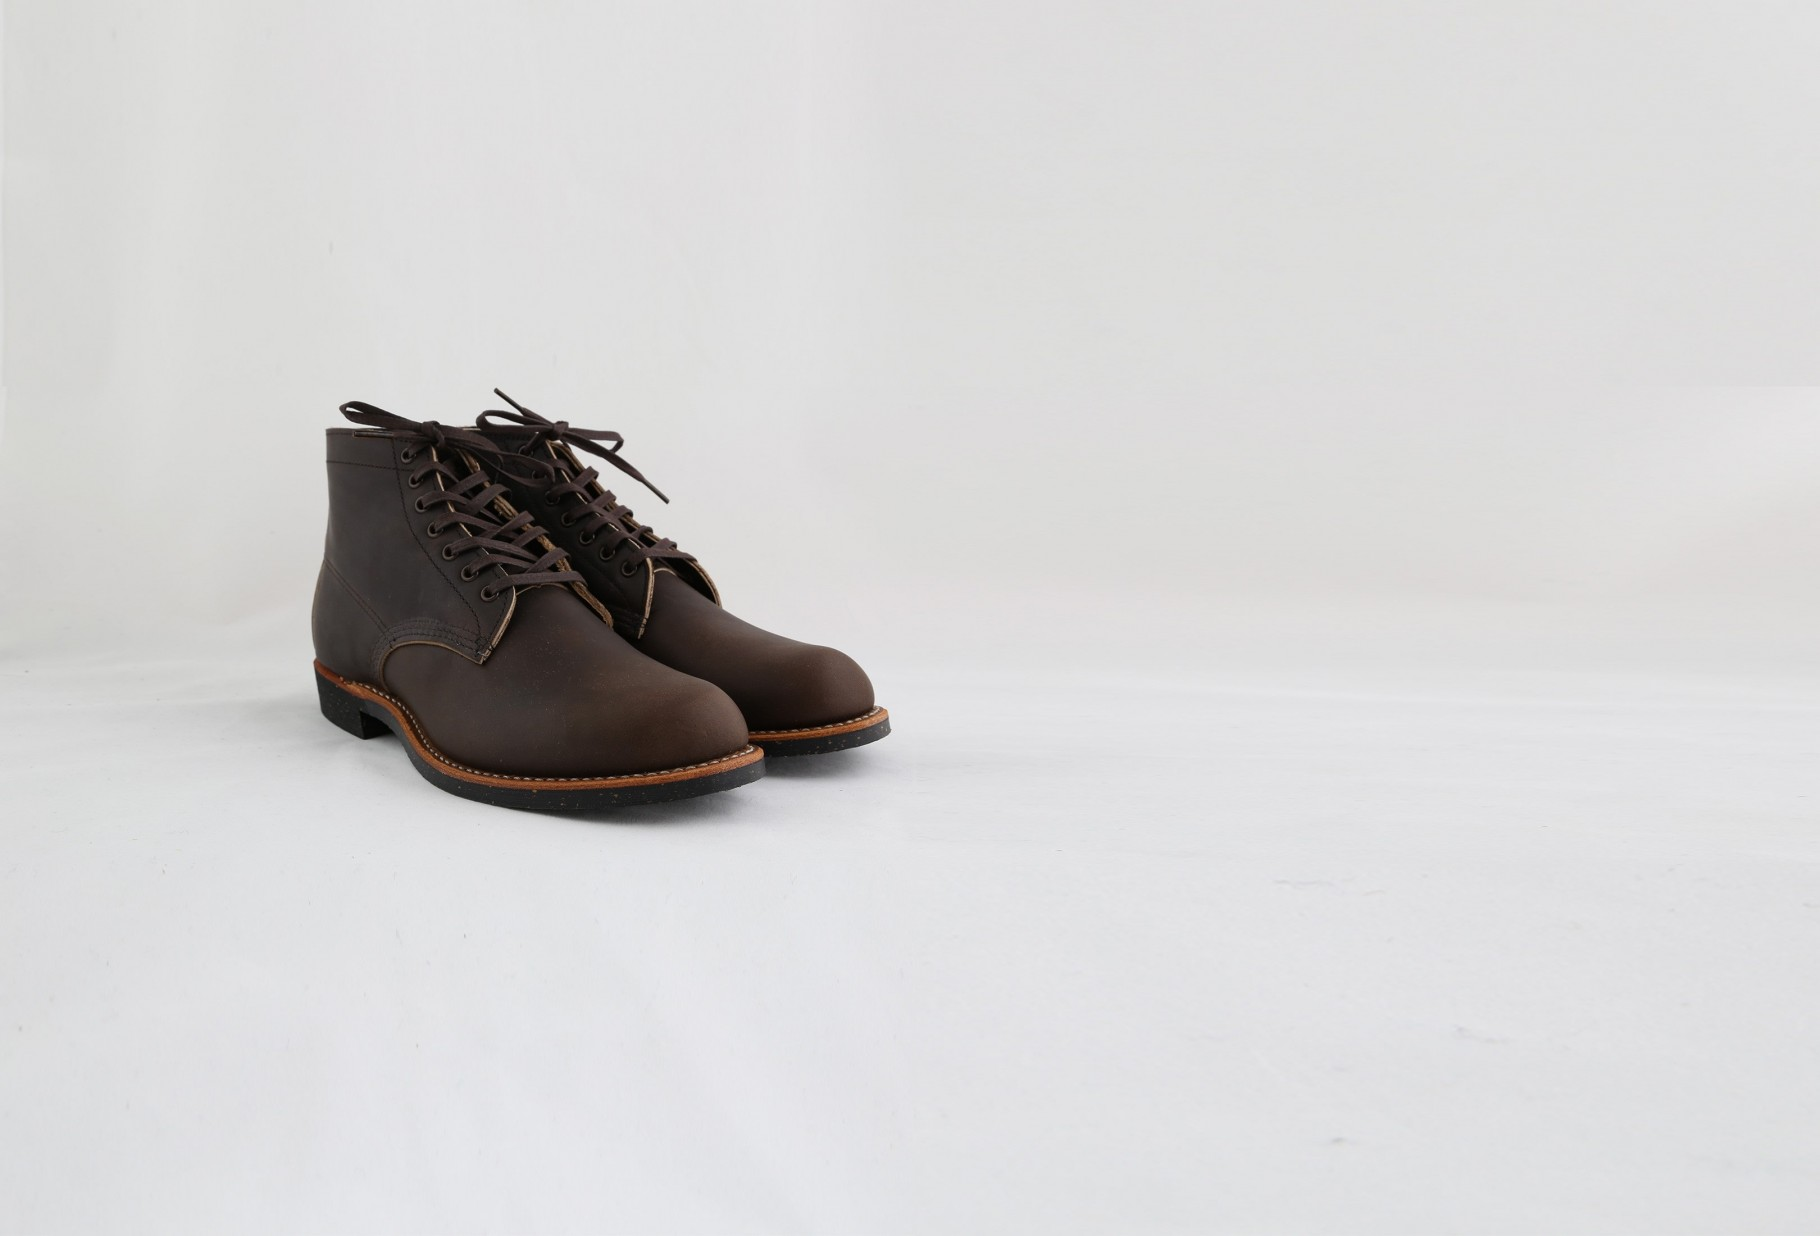 RED WING / Merchant Style no.8061 ebony